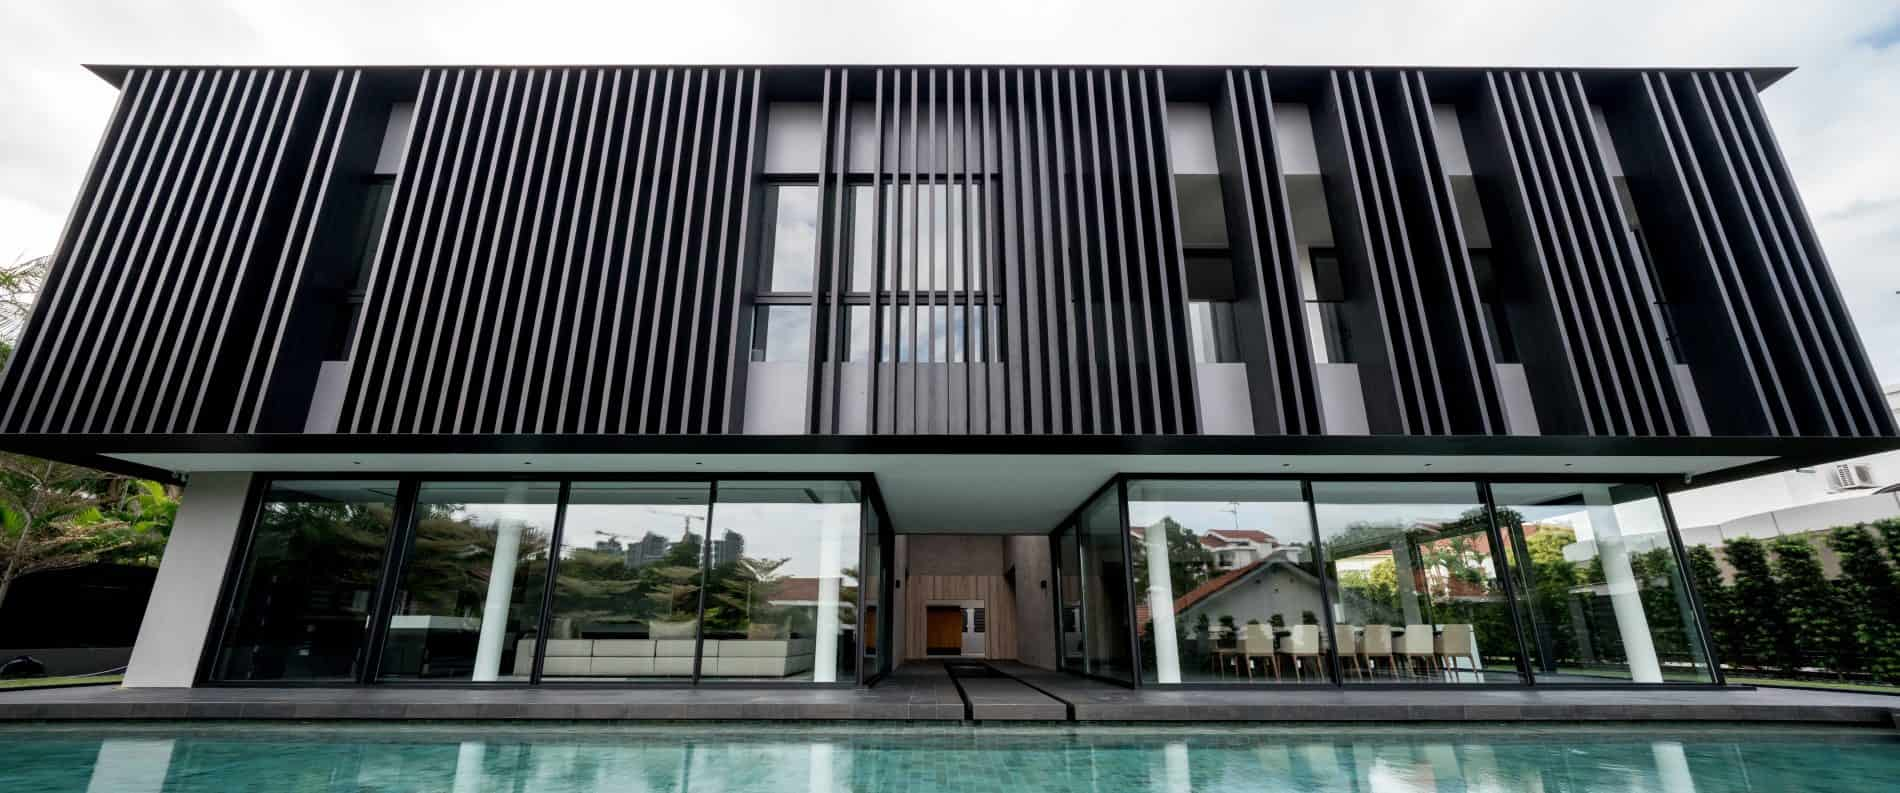 Customized 600 mm x 75 mm wide x 5500 mm high Fins at Tanglin Hill by K2LD Architects Pte Ltd